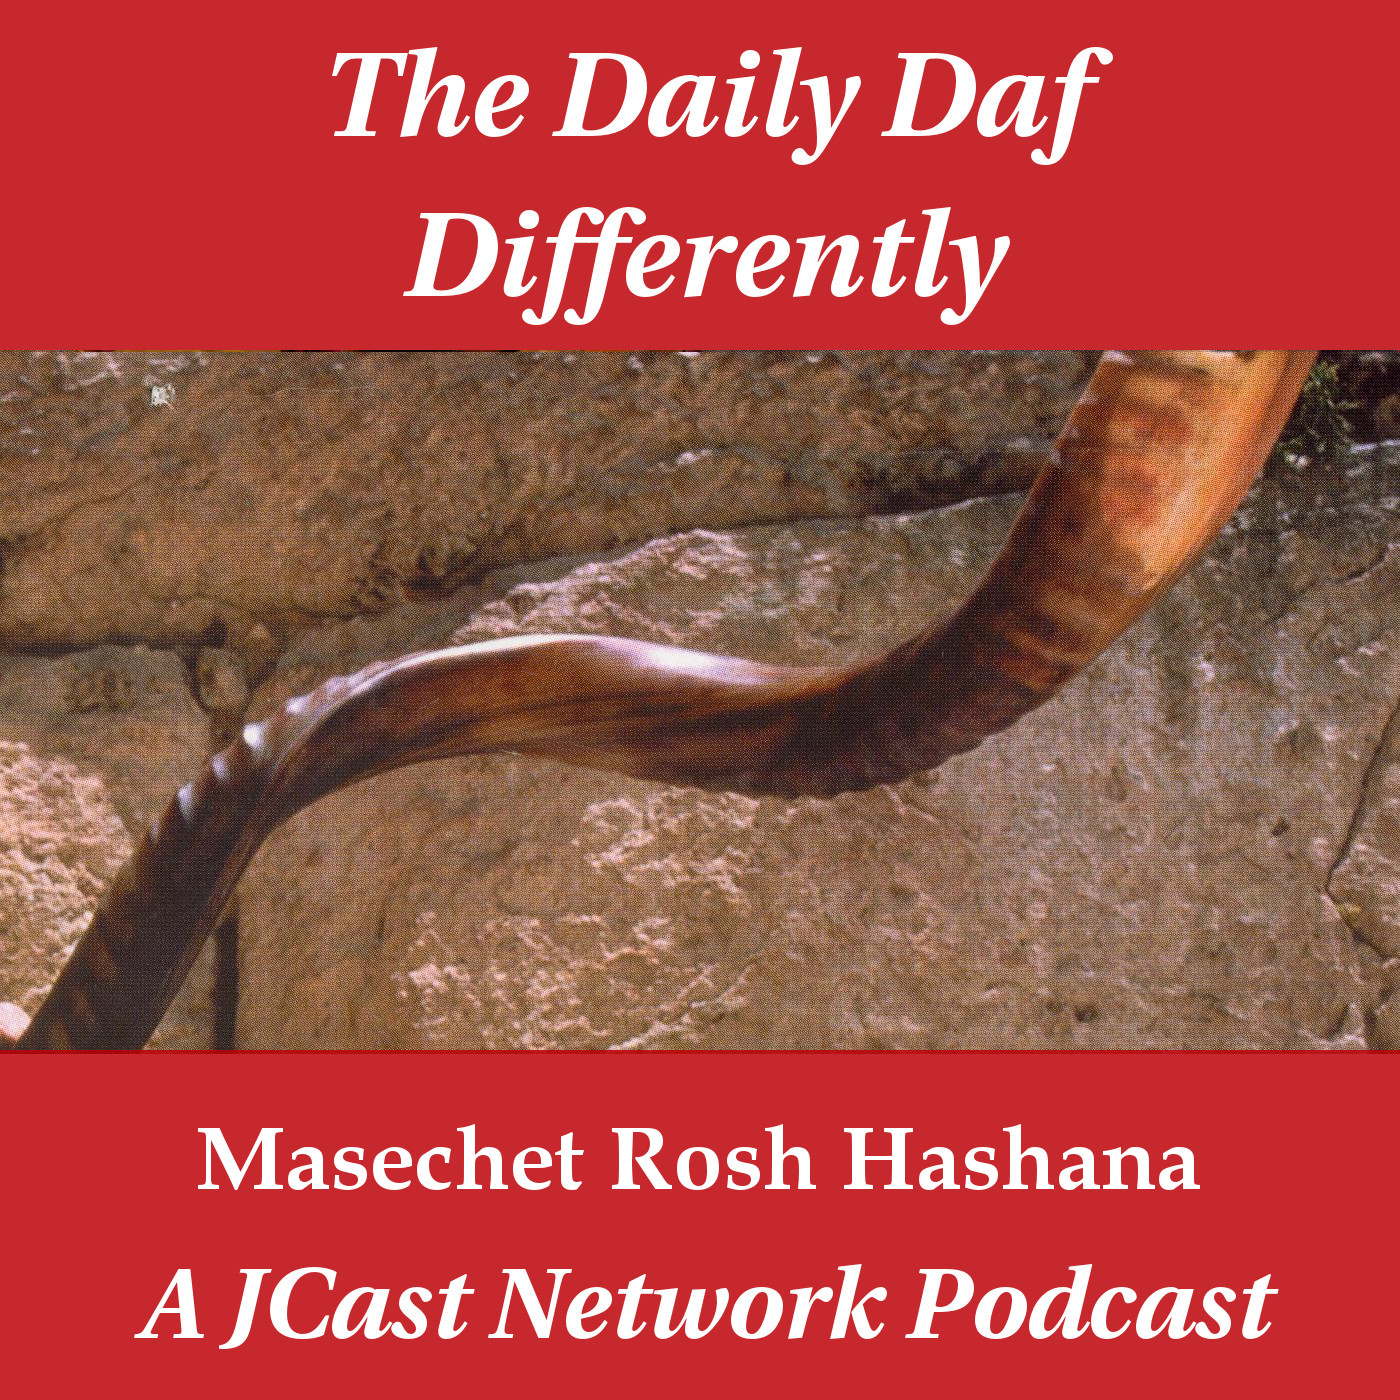 Daily Daf Differently: Masechet Rosh Hashana